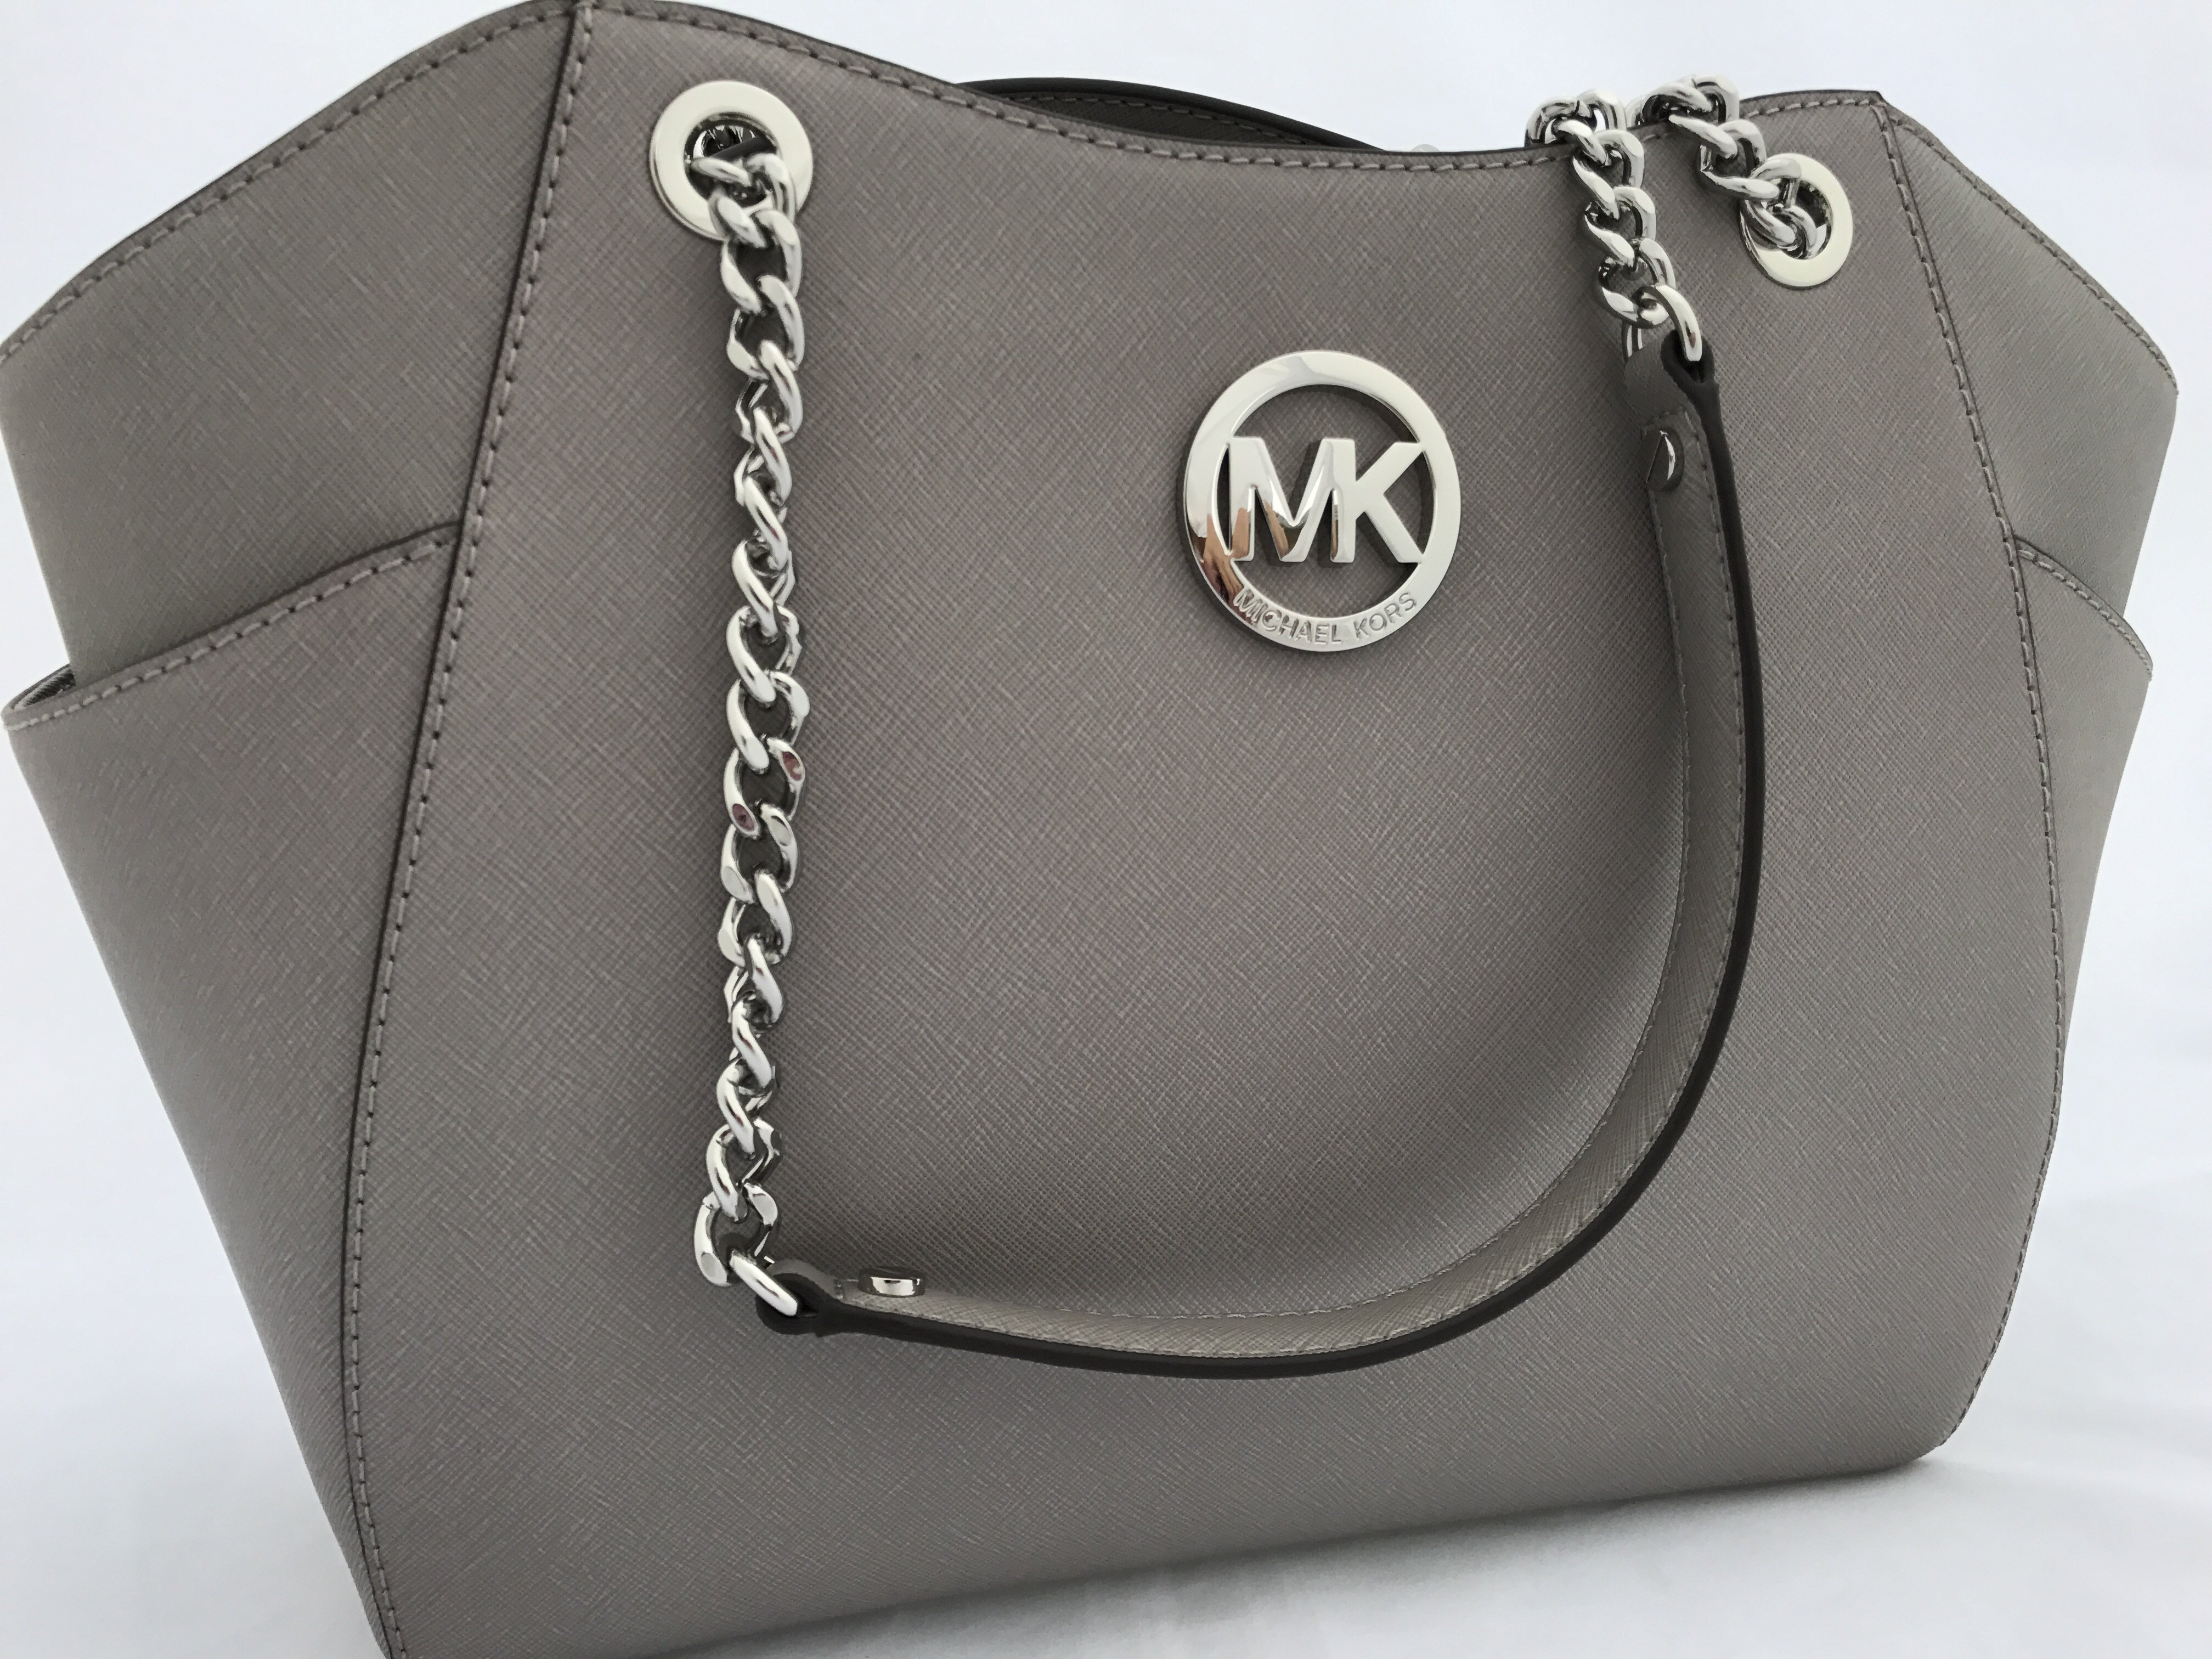 776aa24d59f1 Michael Kors - NWT Michael Kors Grey Saffiano Leather Jet Set Travel Chain  Shoulder Tote Bag - Walmart.com